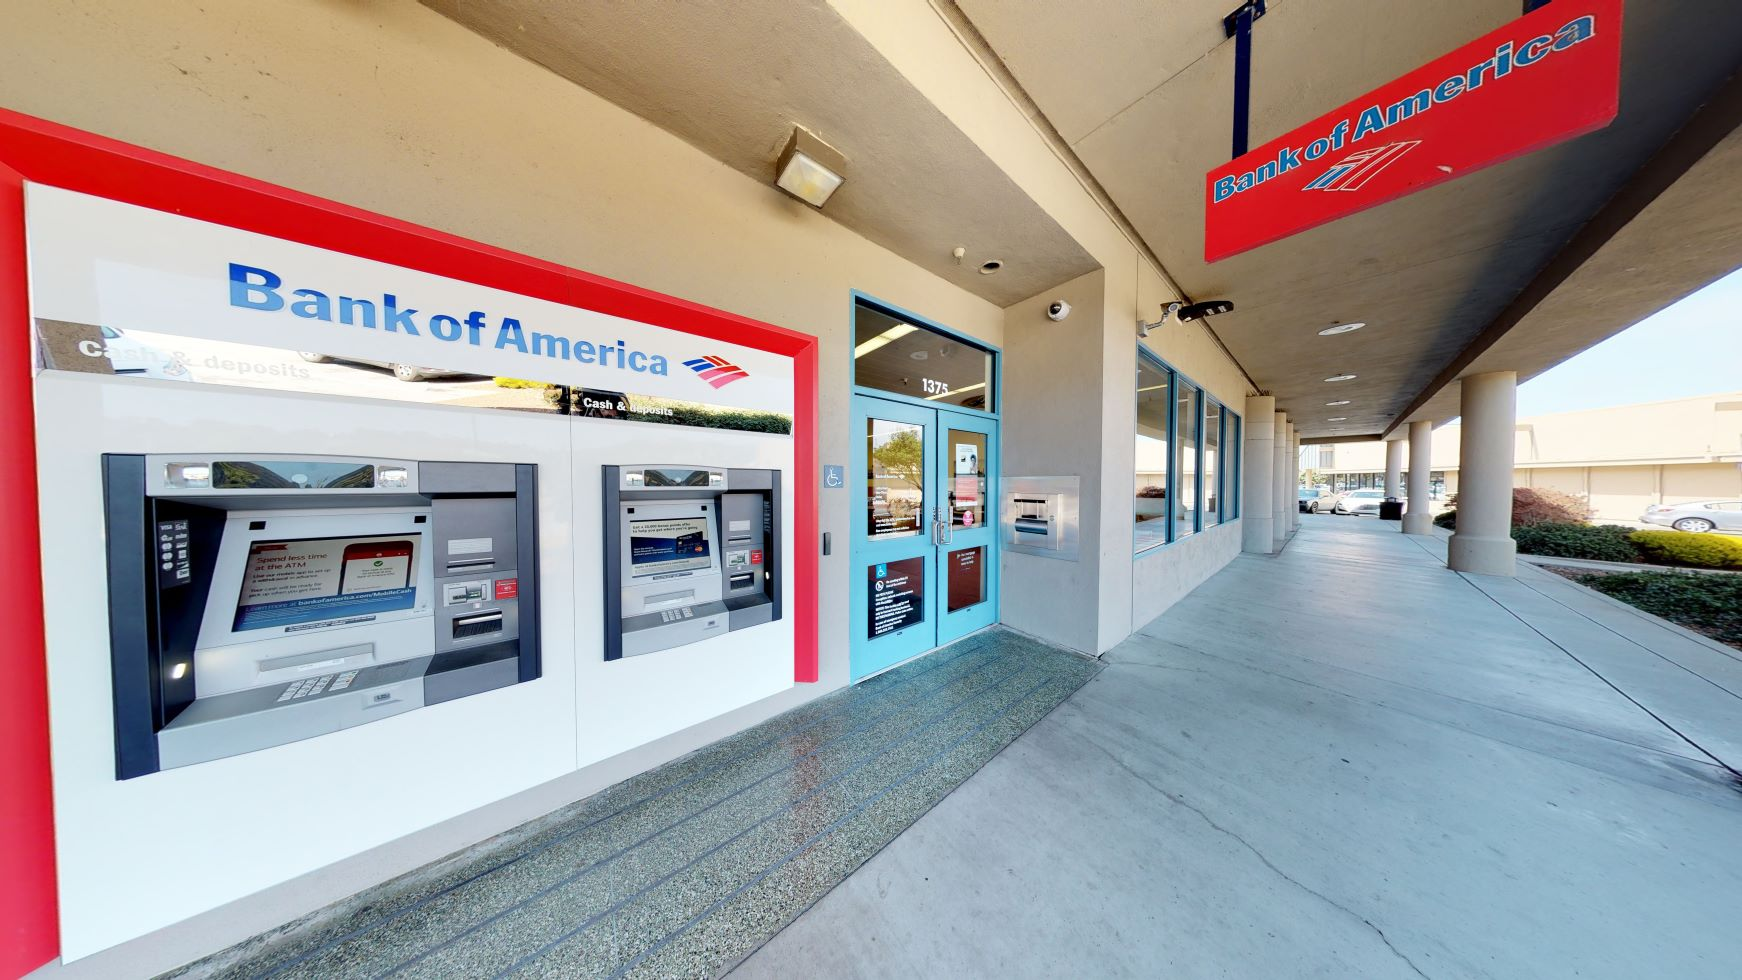 Bank of America financial center with walk-up ATM | 1375 Linda Mar Shopping Ctr, Pacifica, CA 94044